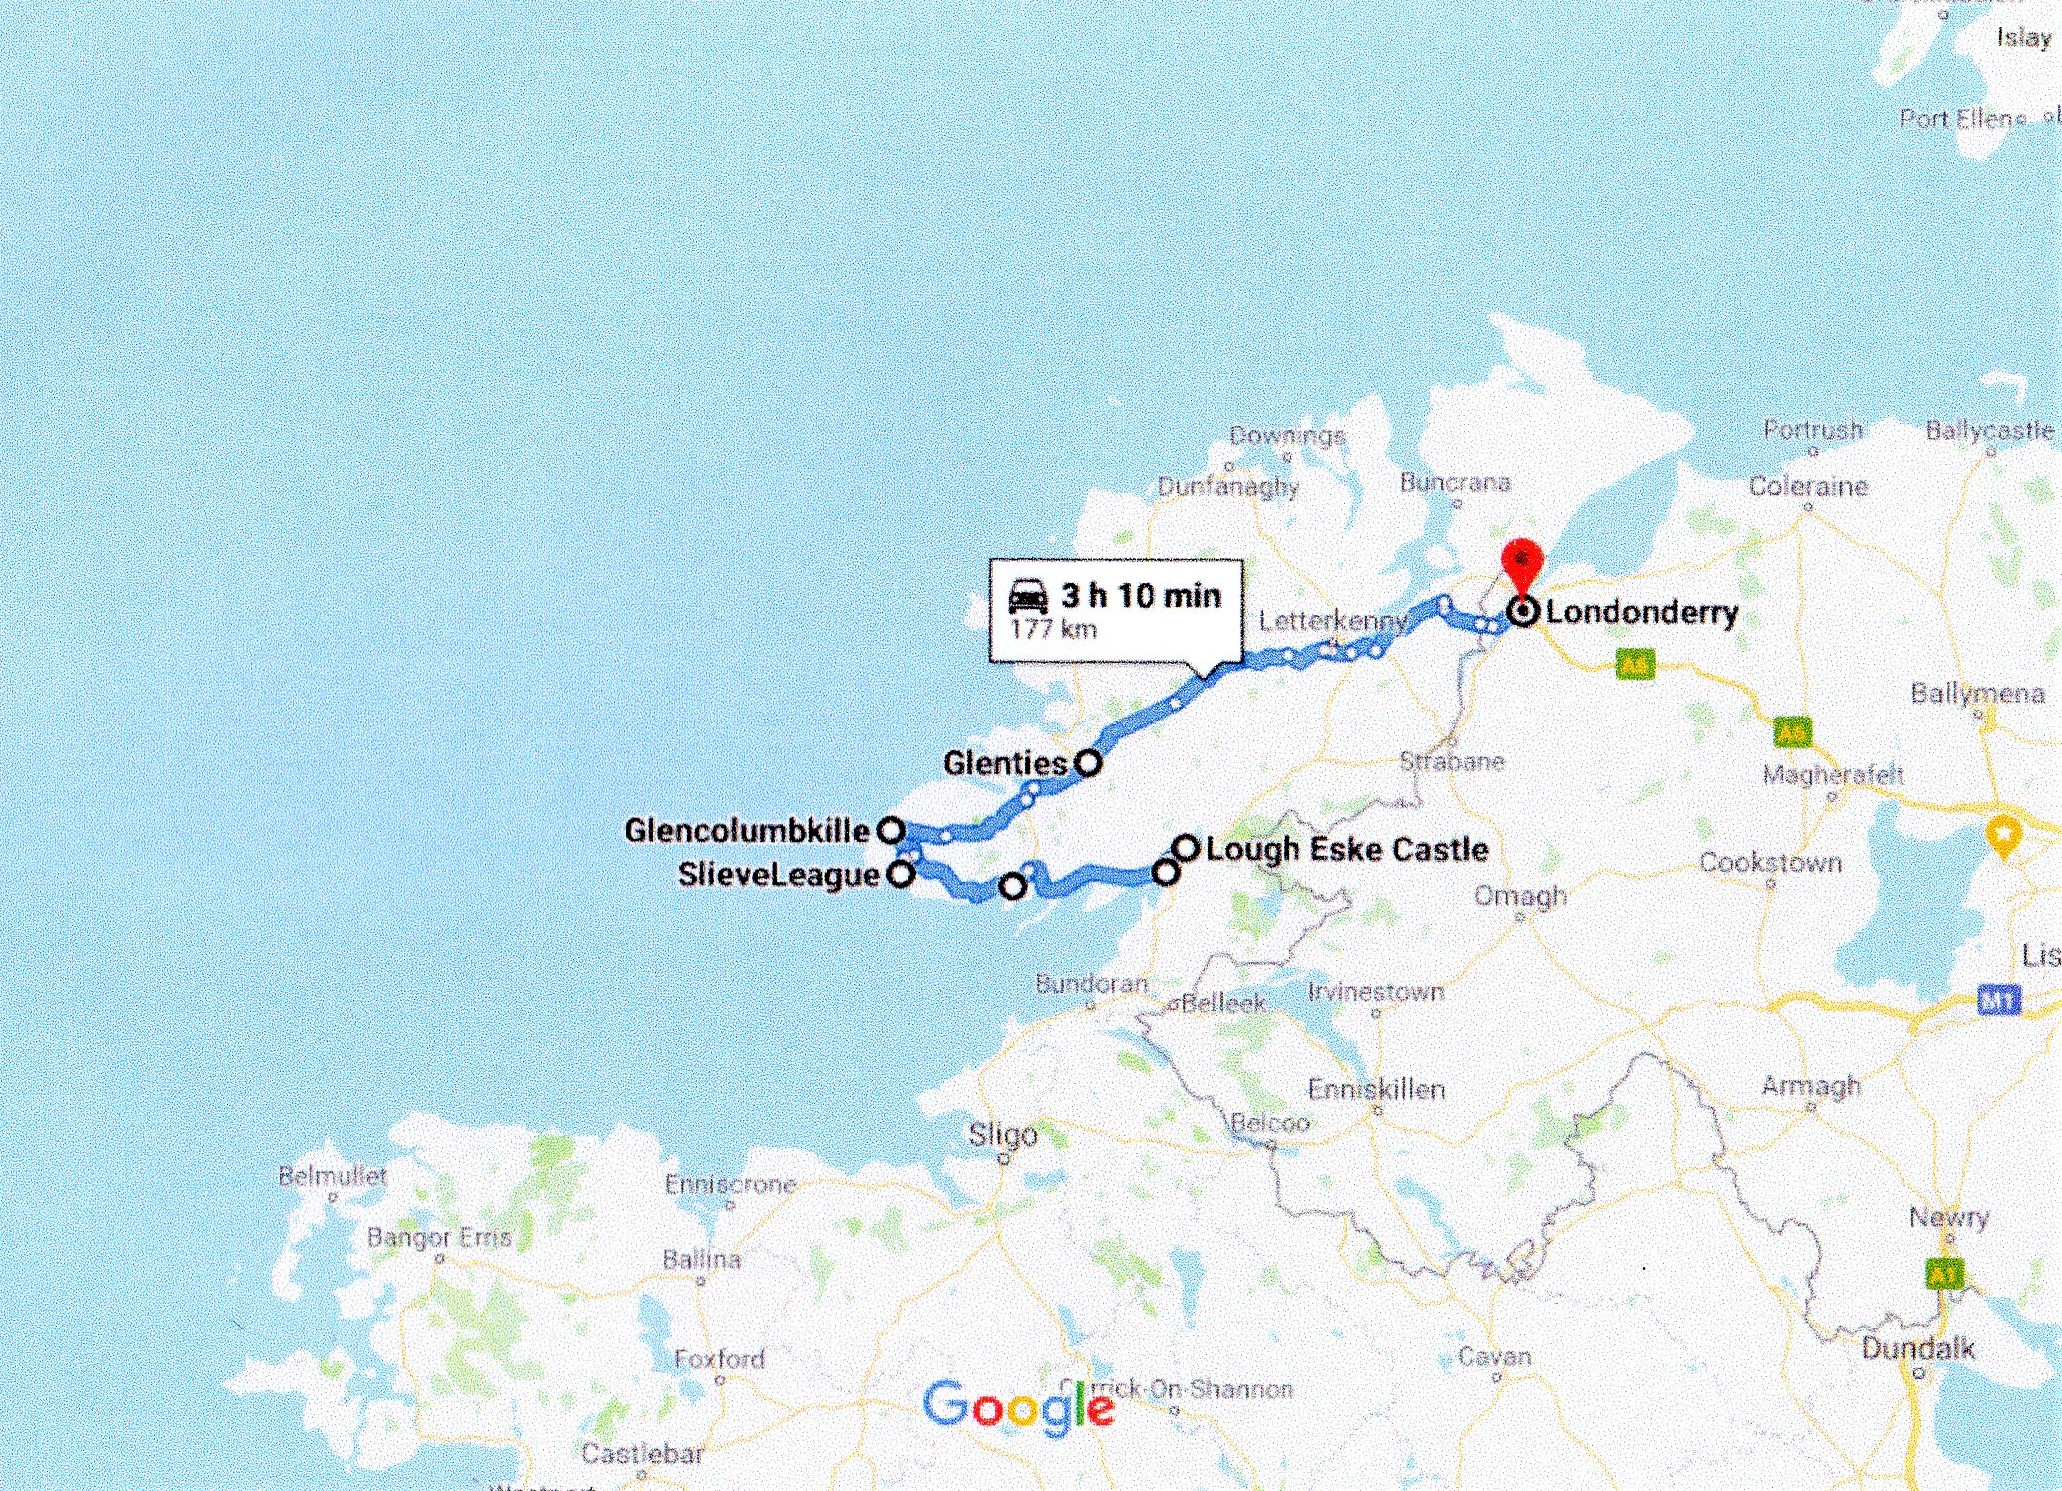 google route map donegal to derry